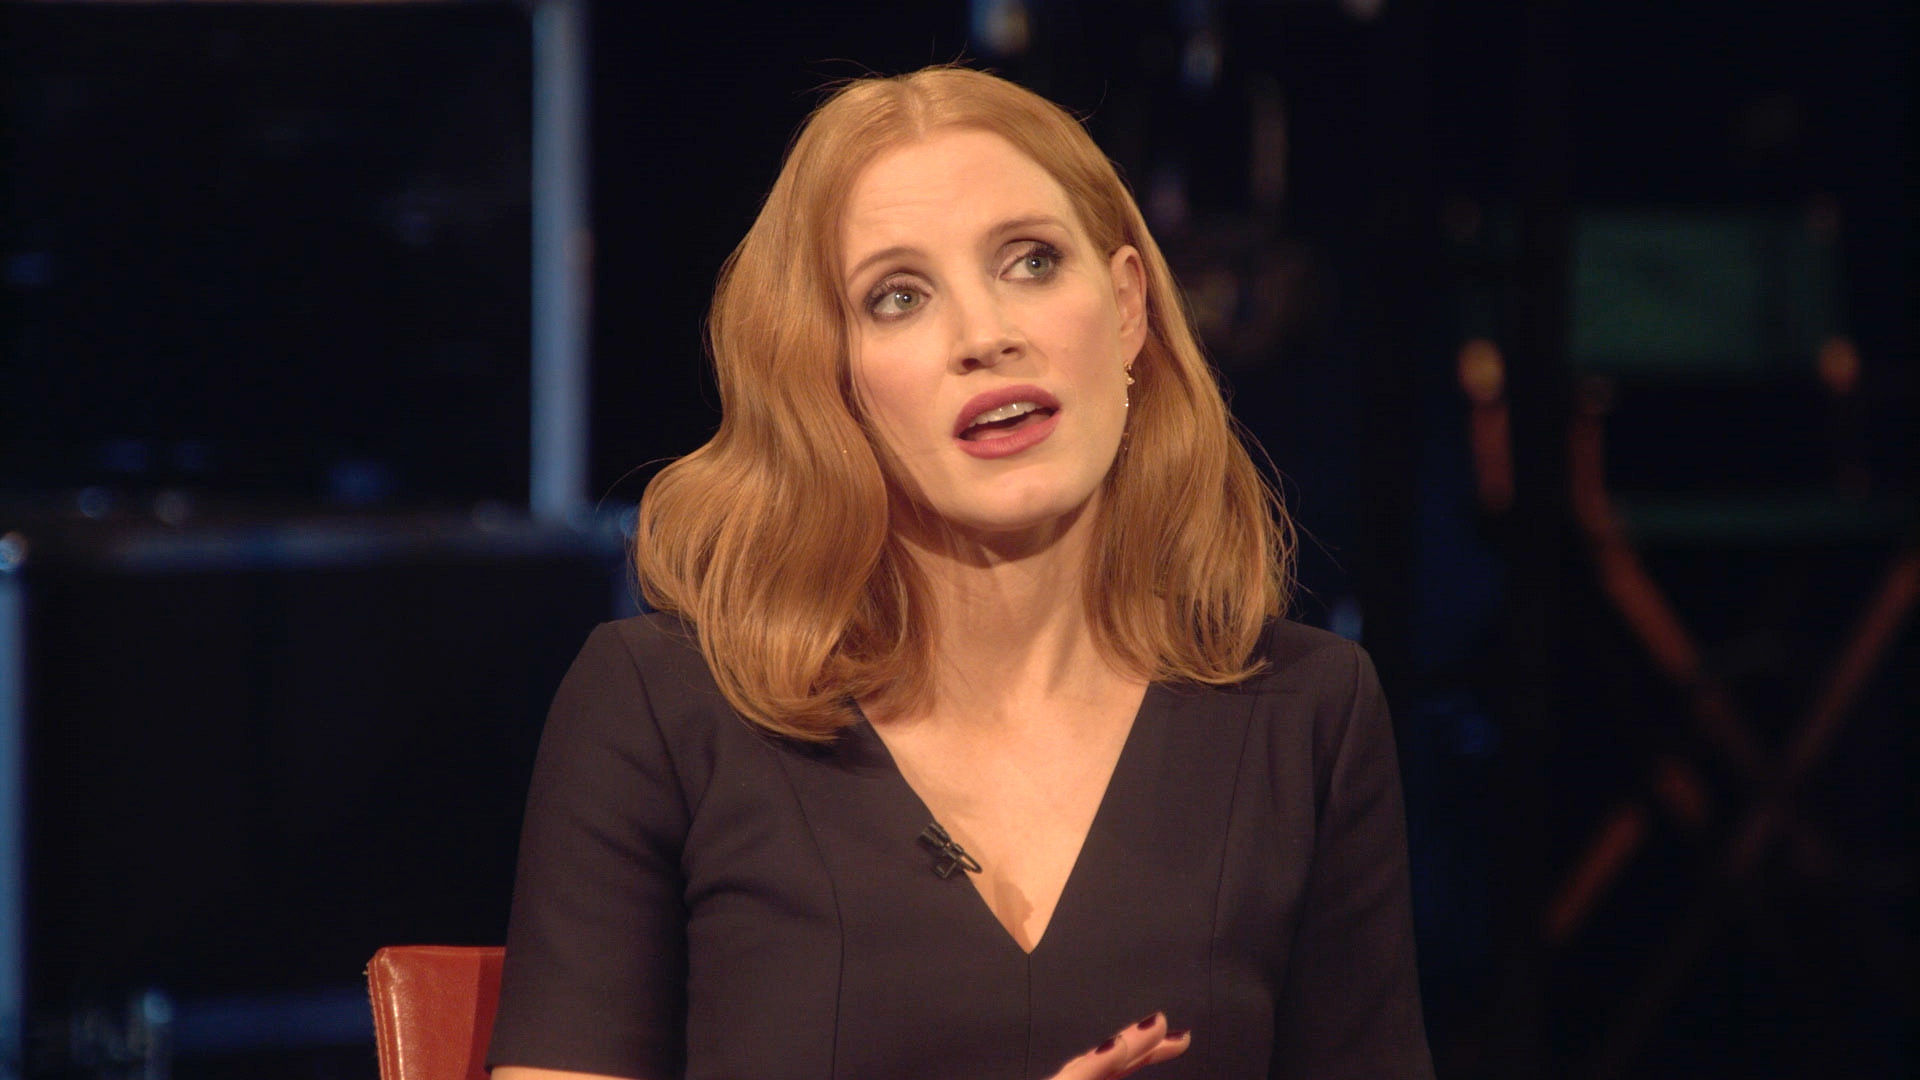 Jessica Chastain on Finally Being Heard at Juilliard